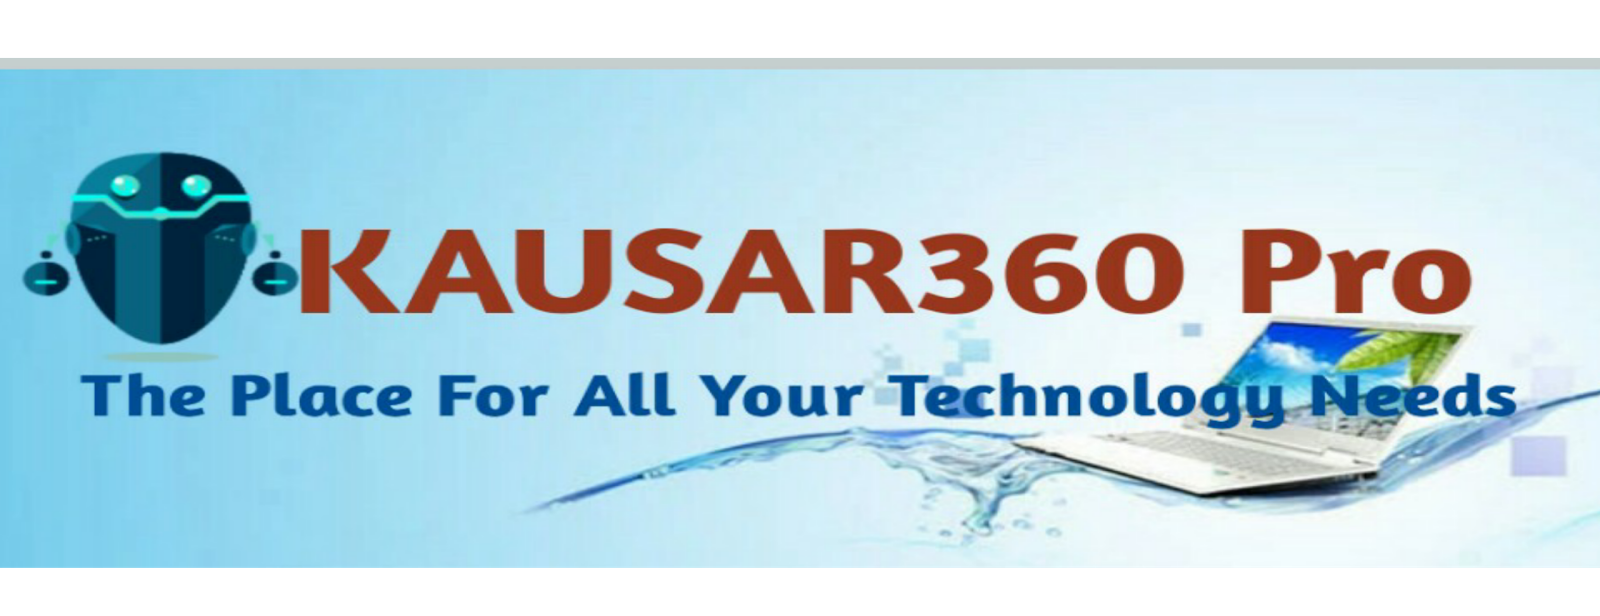 Kausar360 Pro | The Place For All Your Technology Needs